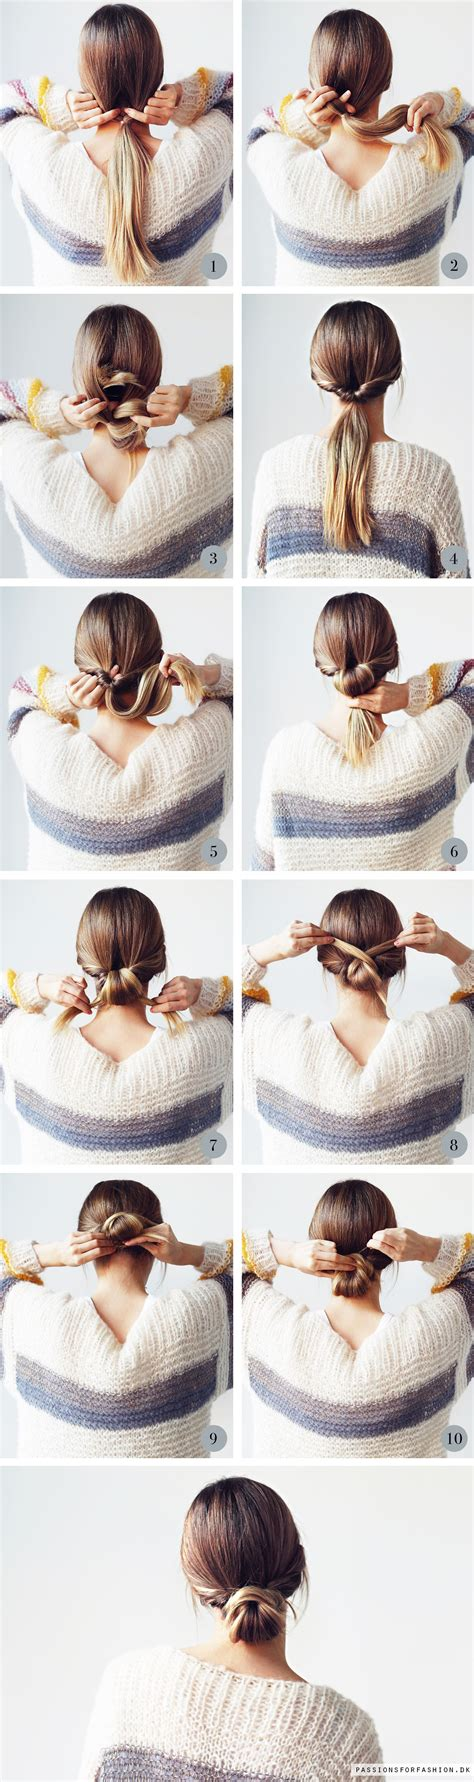 Hairstyles Buns Step By Step by Step By Step Bun Twisted Bun Pony Tails And Buns